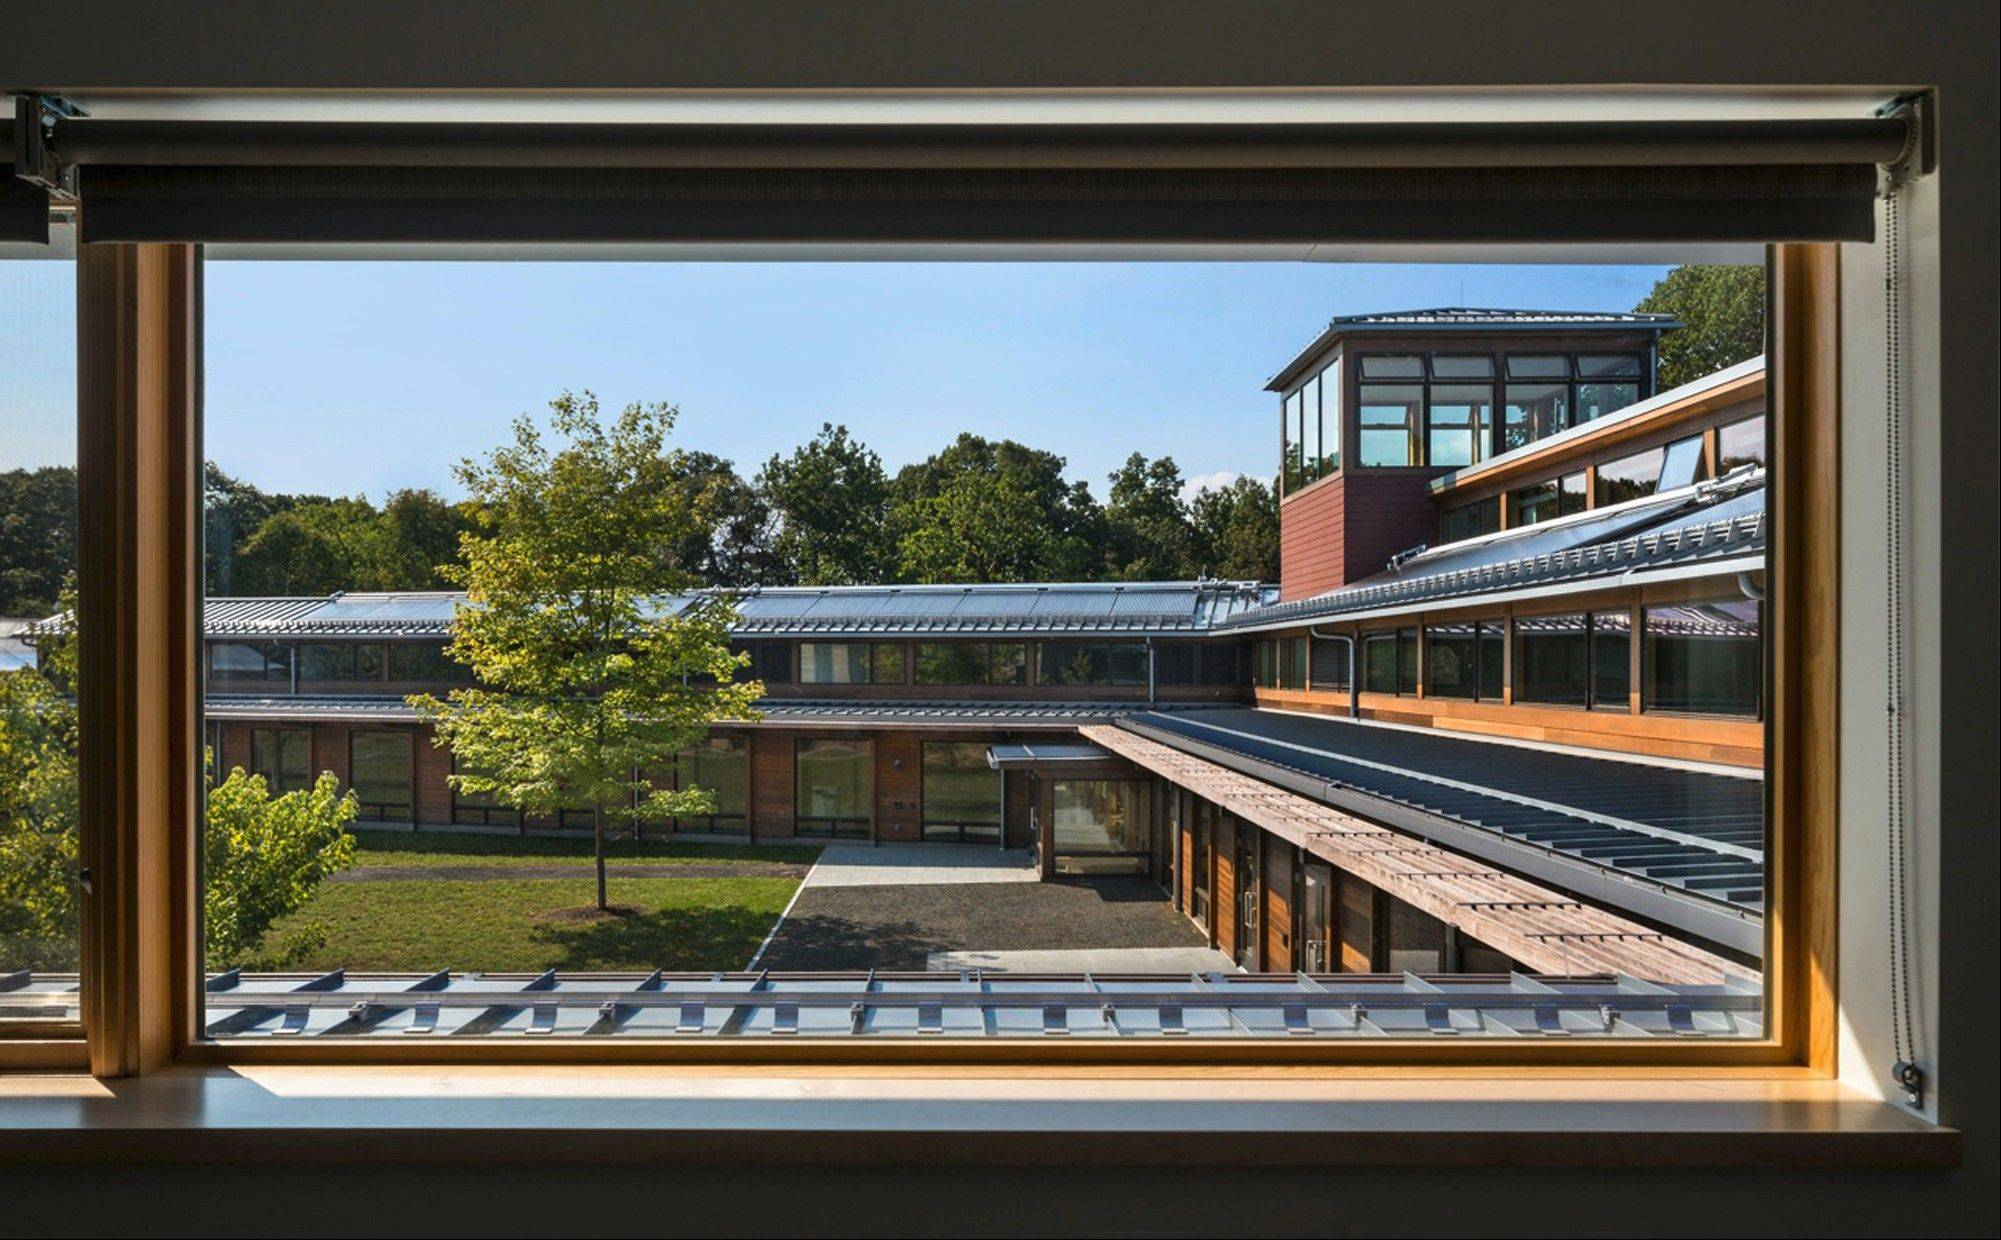 The U-shaped Kohler Environmental Center, part of the Choate Rosemary Hall preparatory school in Wallingford, Conn., achieves net-zero energy use through an array of tactics.